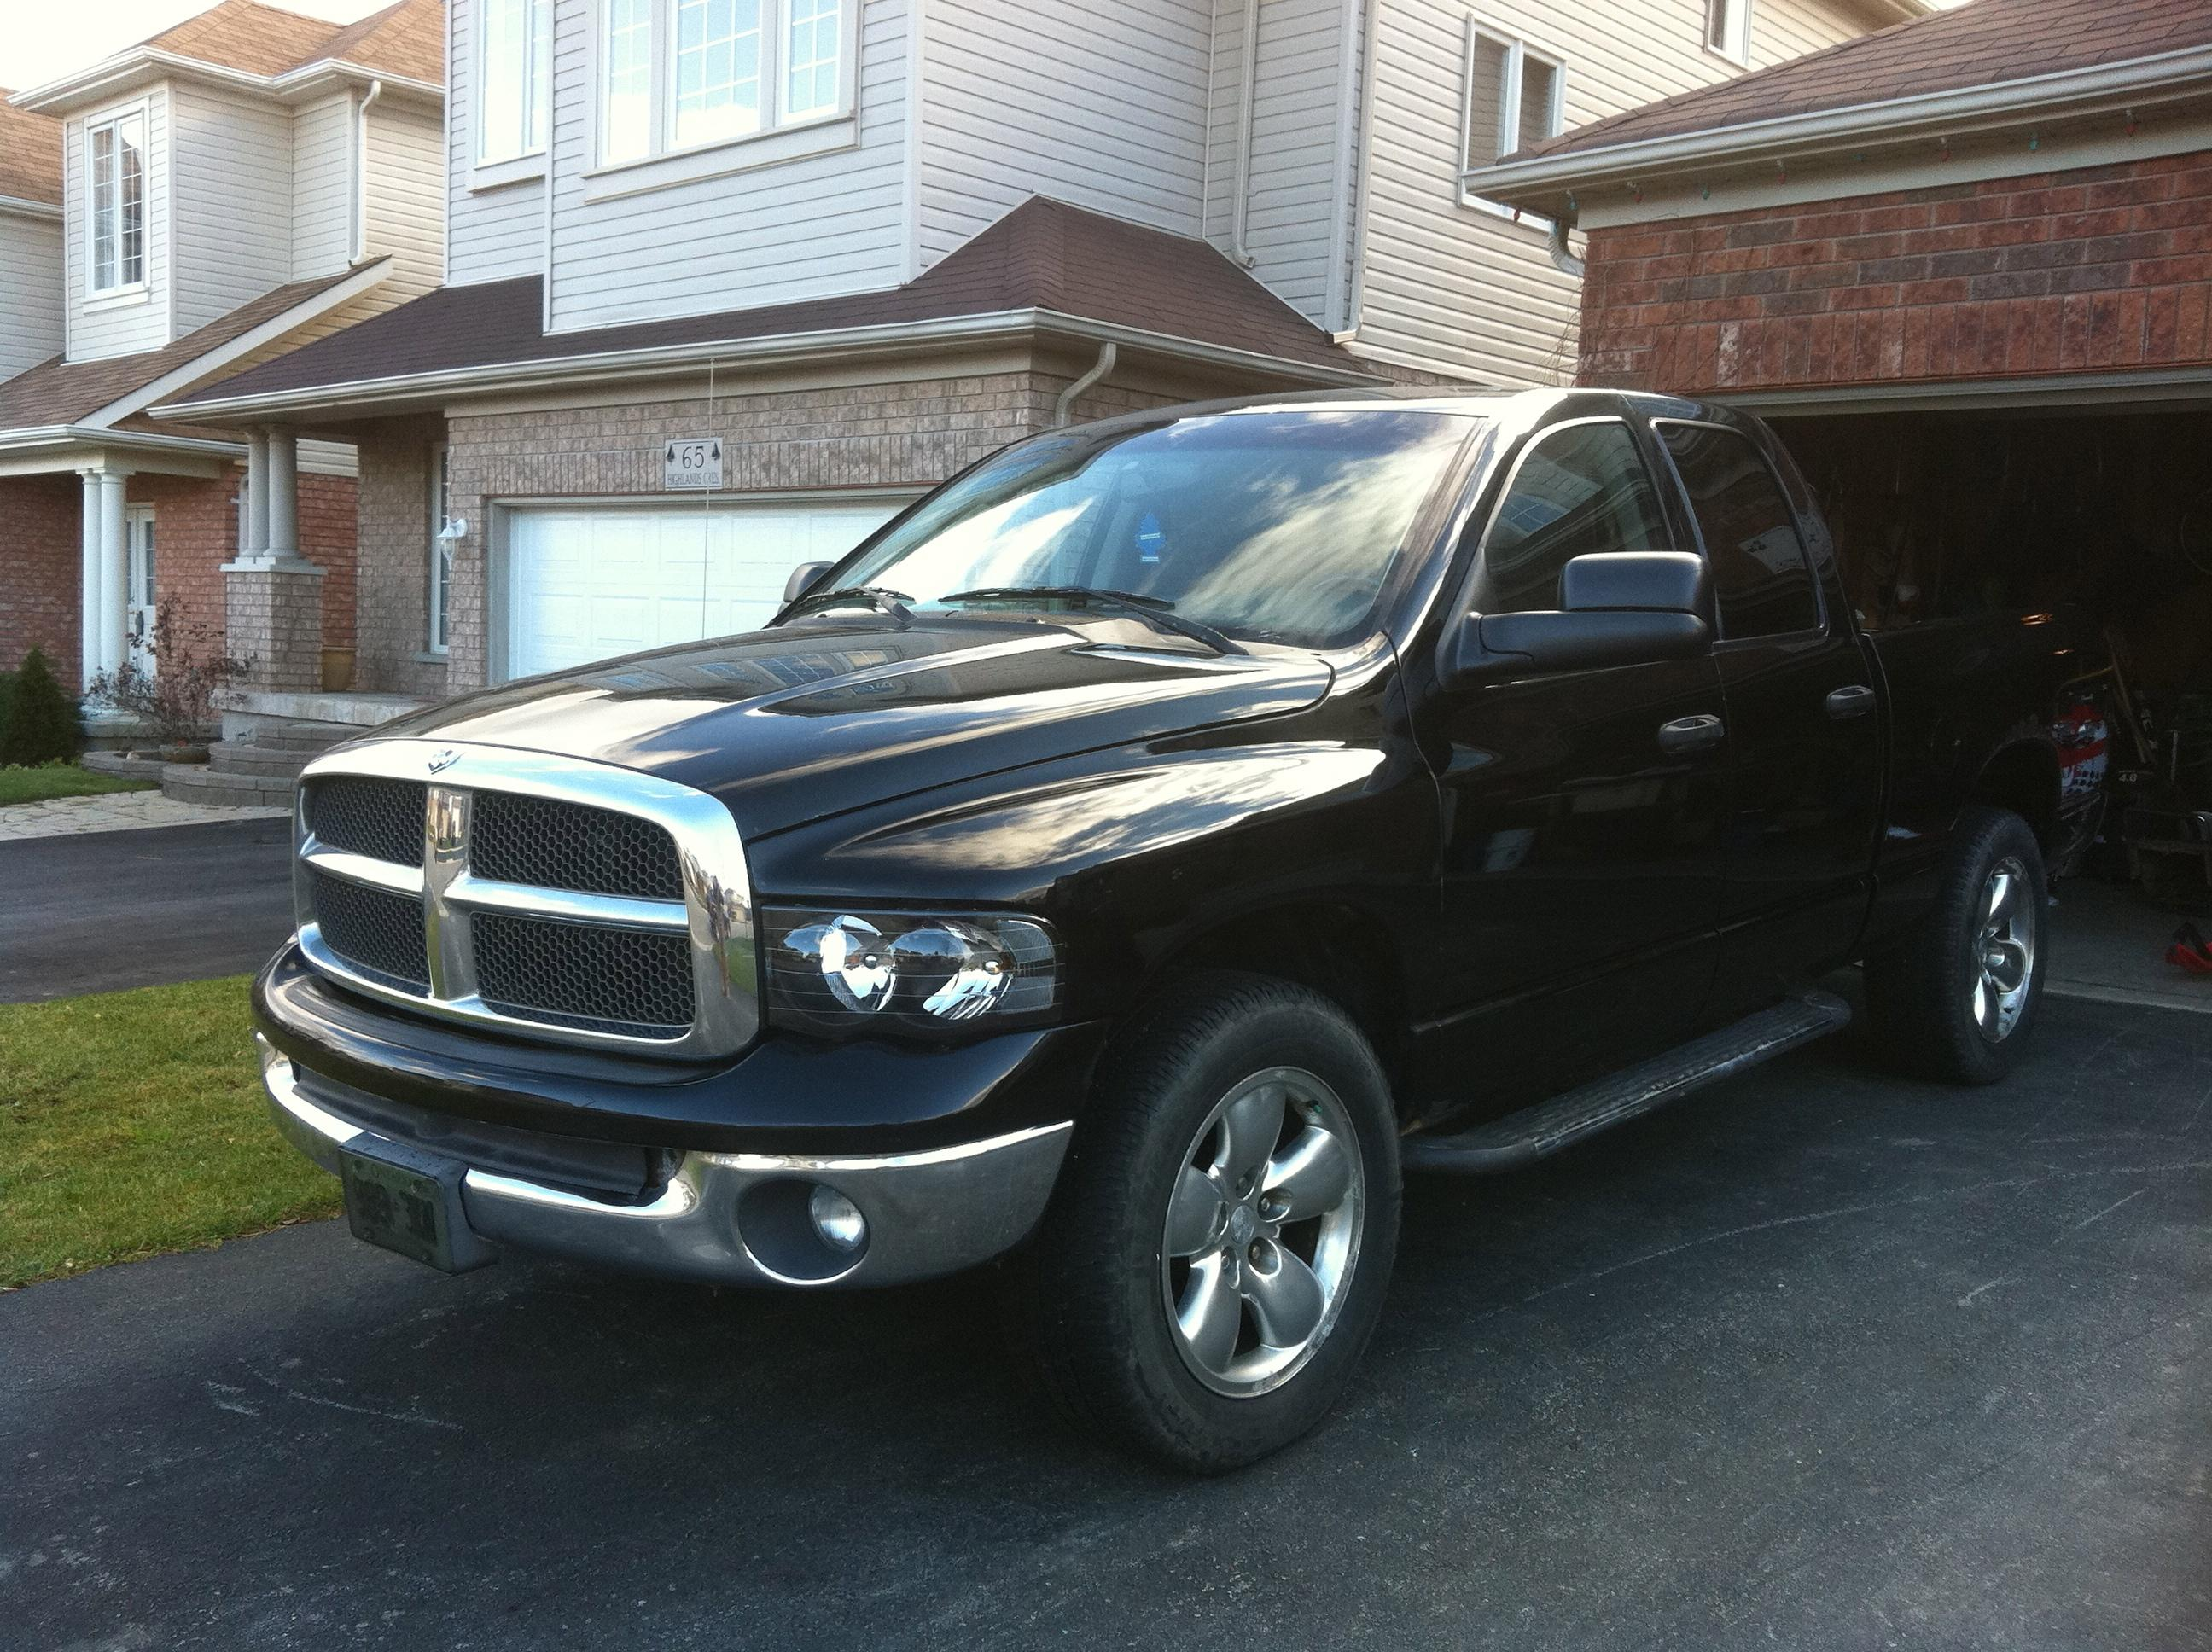 Hyundai Of Bedford >> BlackPearl392 2002 Dodge Ram 1500 Quad CabShort Bed Specs, Photos, Modification Info at CarDomain